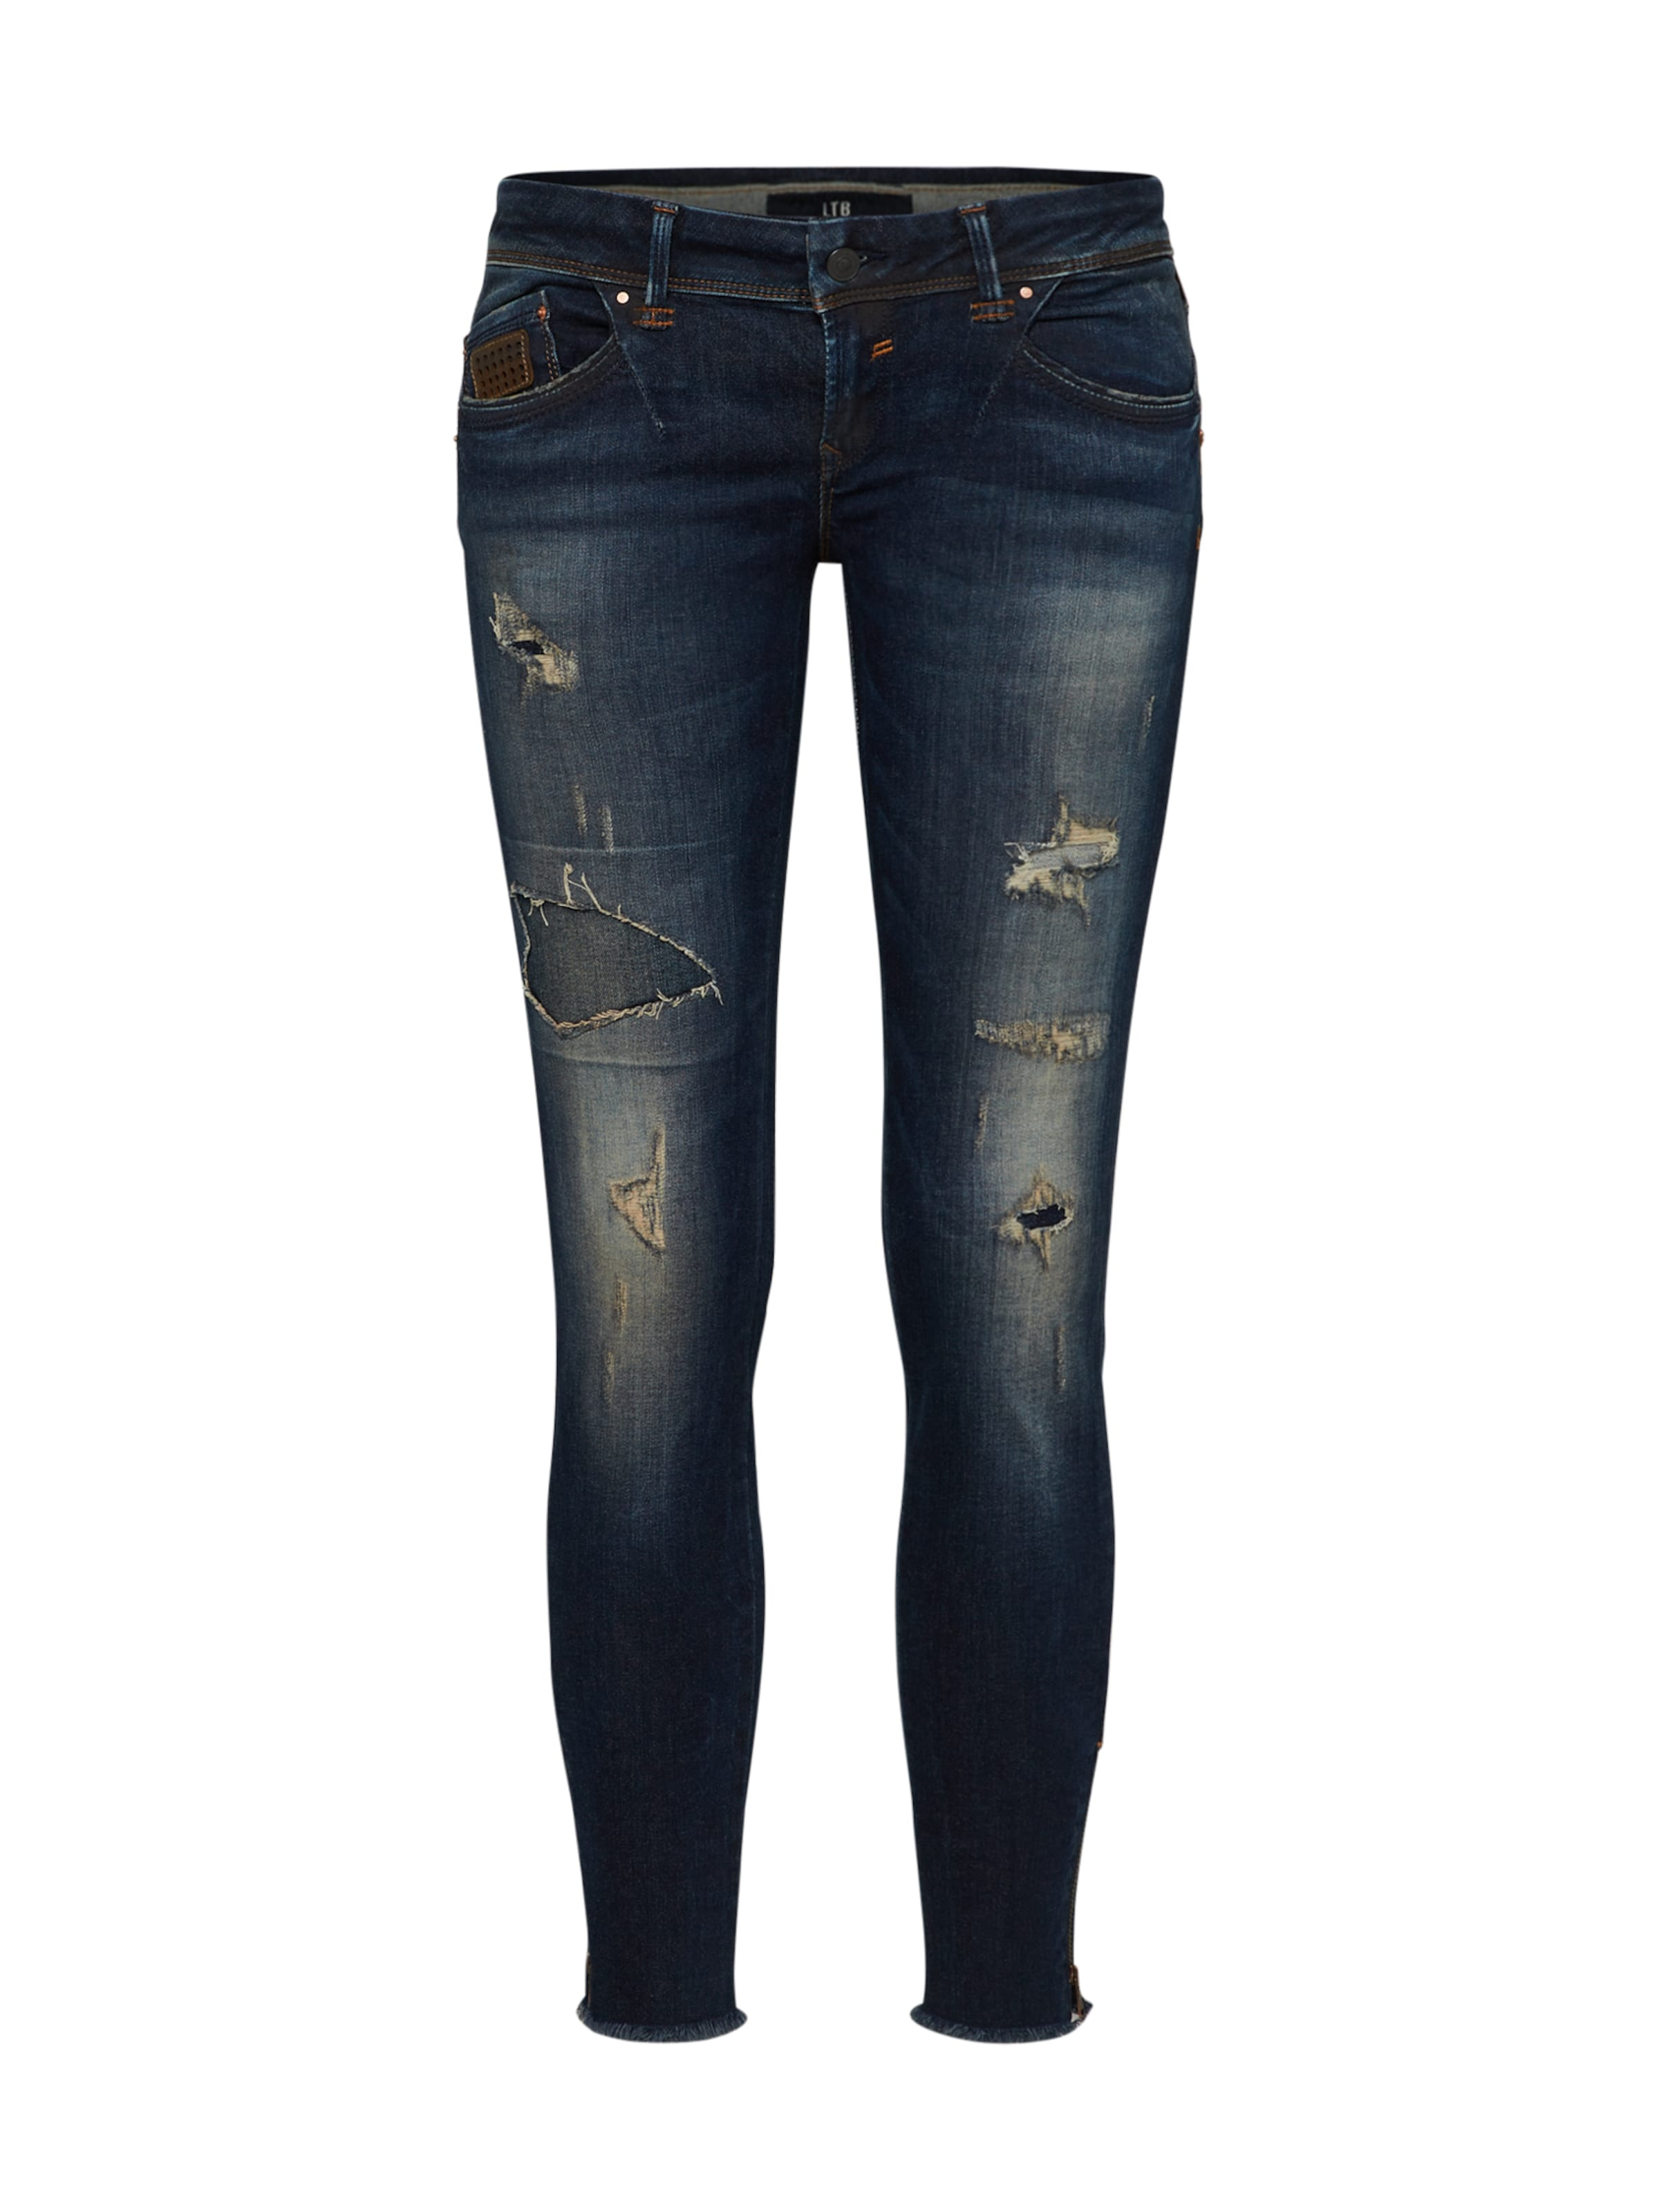 Ltb 'melody' Jeans Jeans In Dunkelblau Ltb xWdCBore